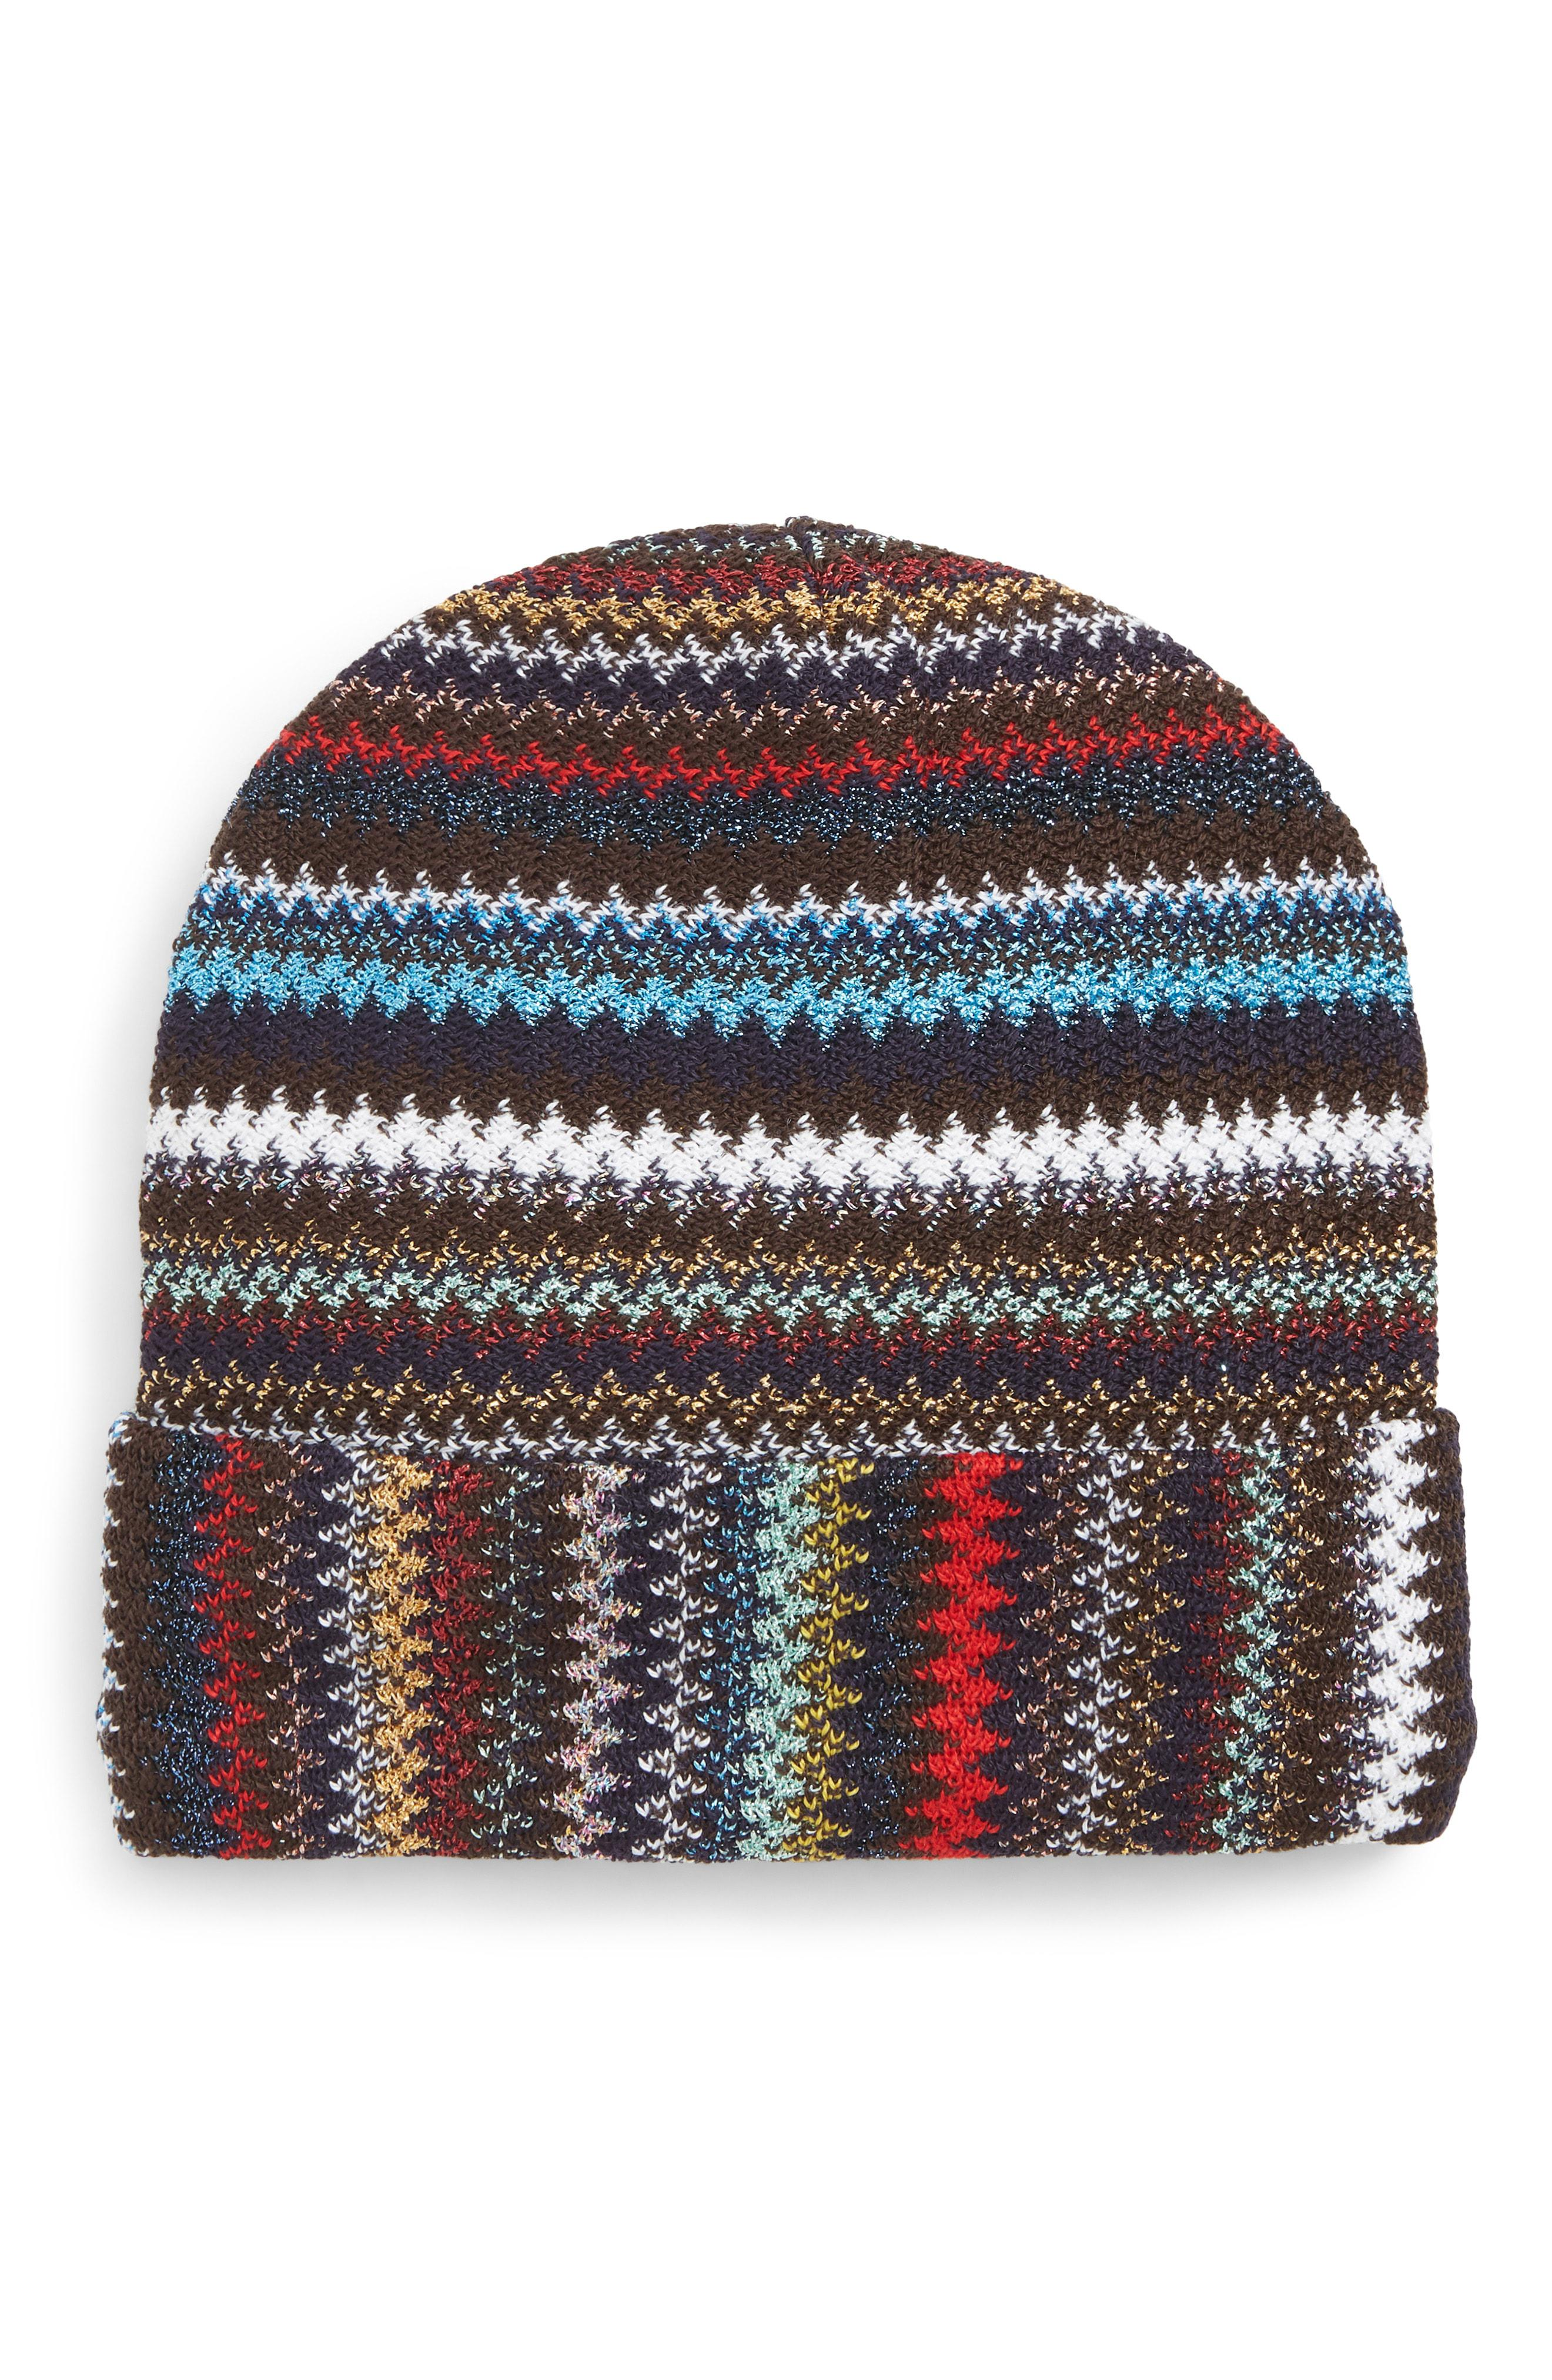 Lyst - Missoni Knitted Beanie Hat in Black 3520902fd595